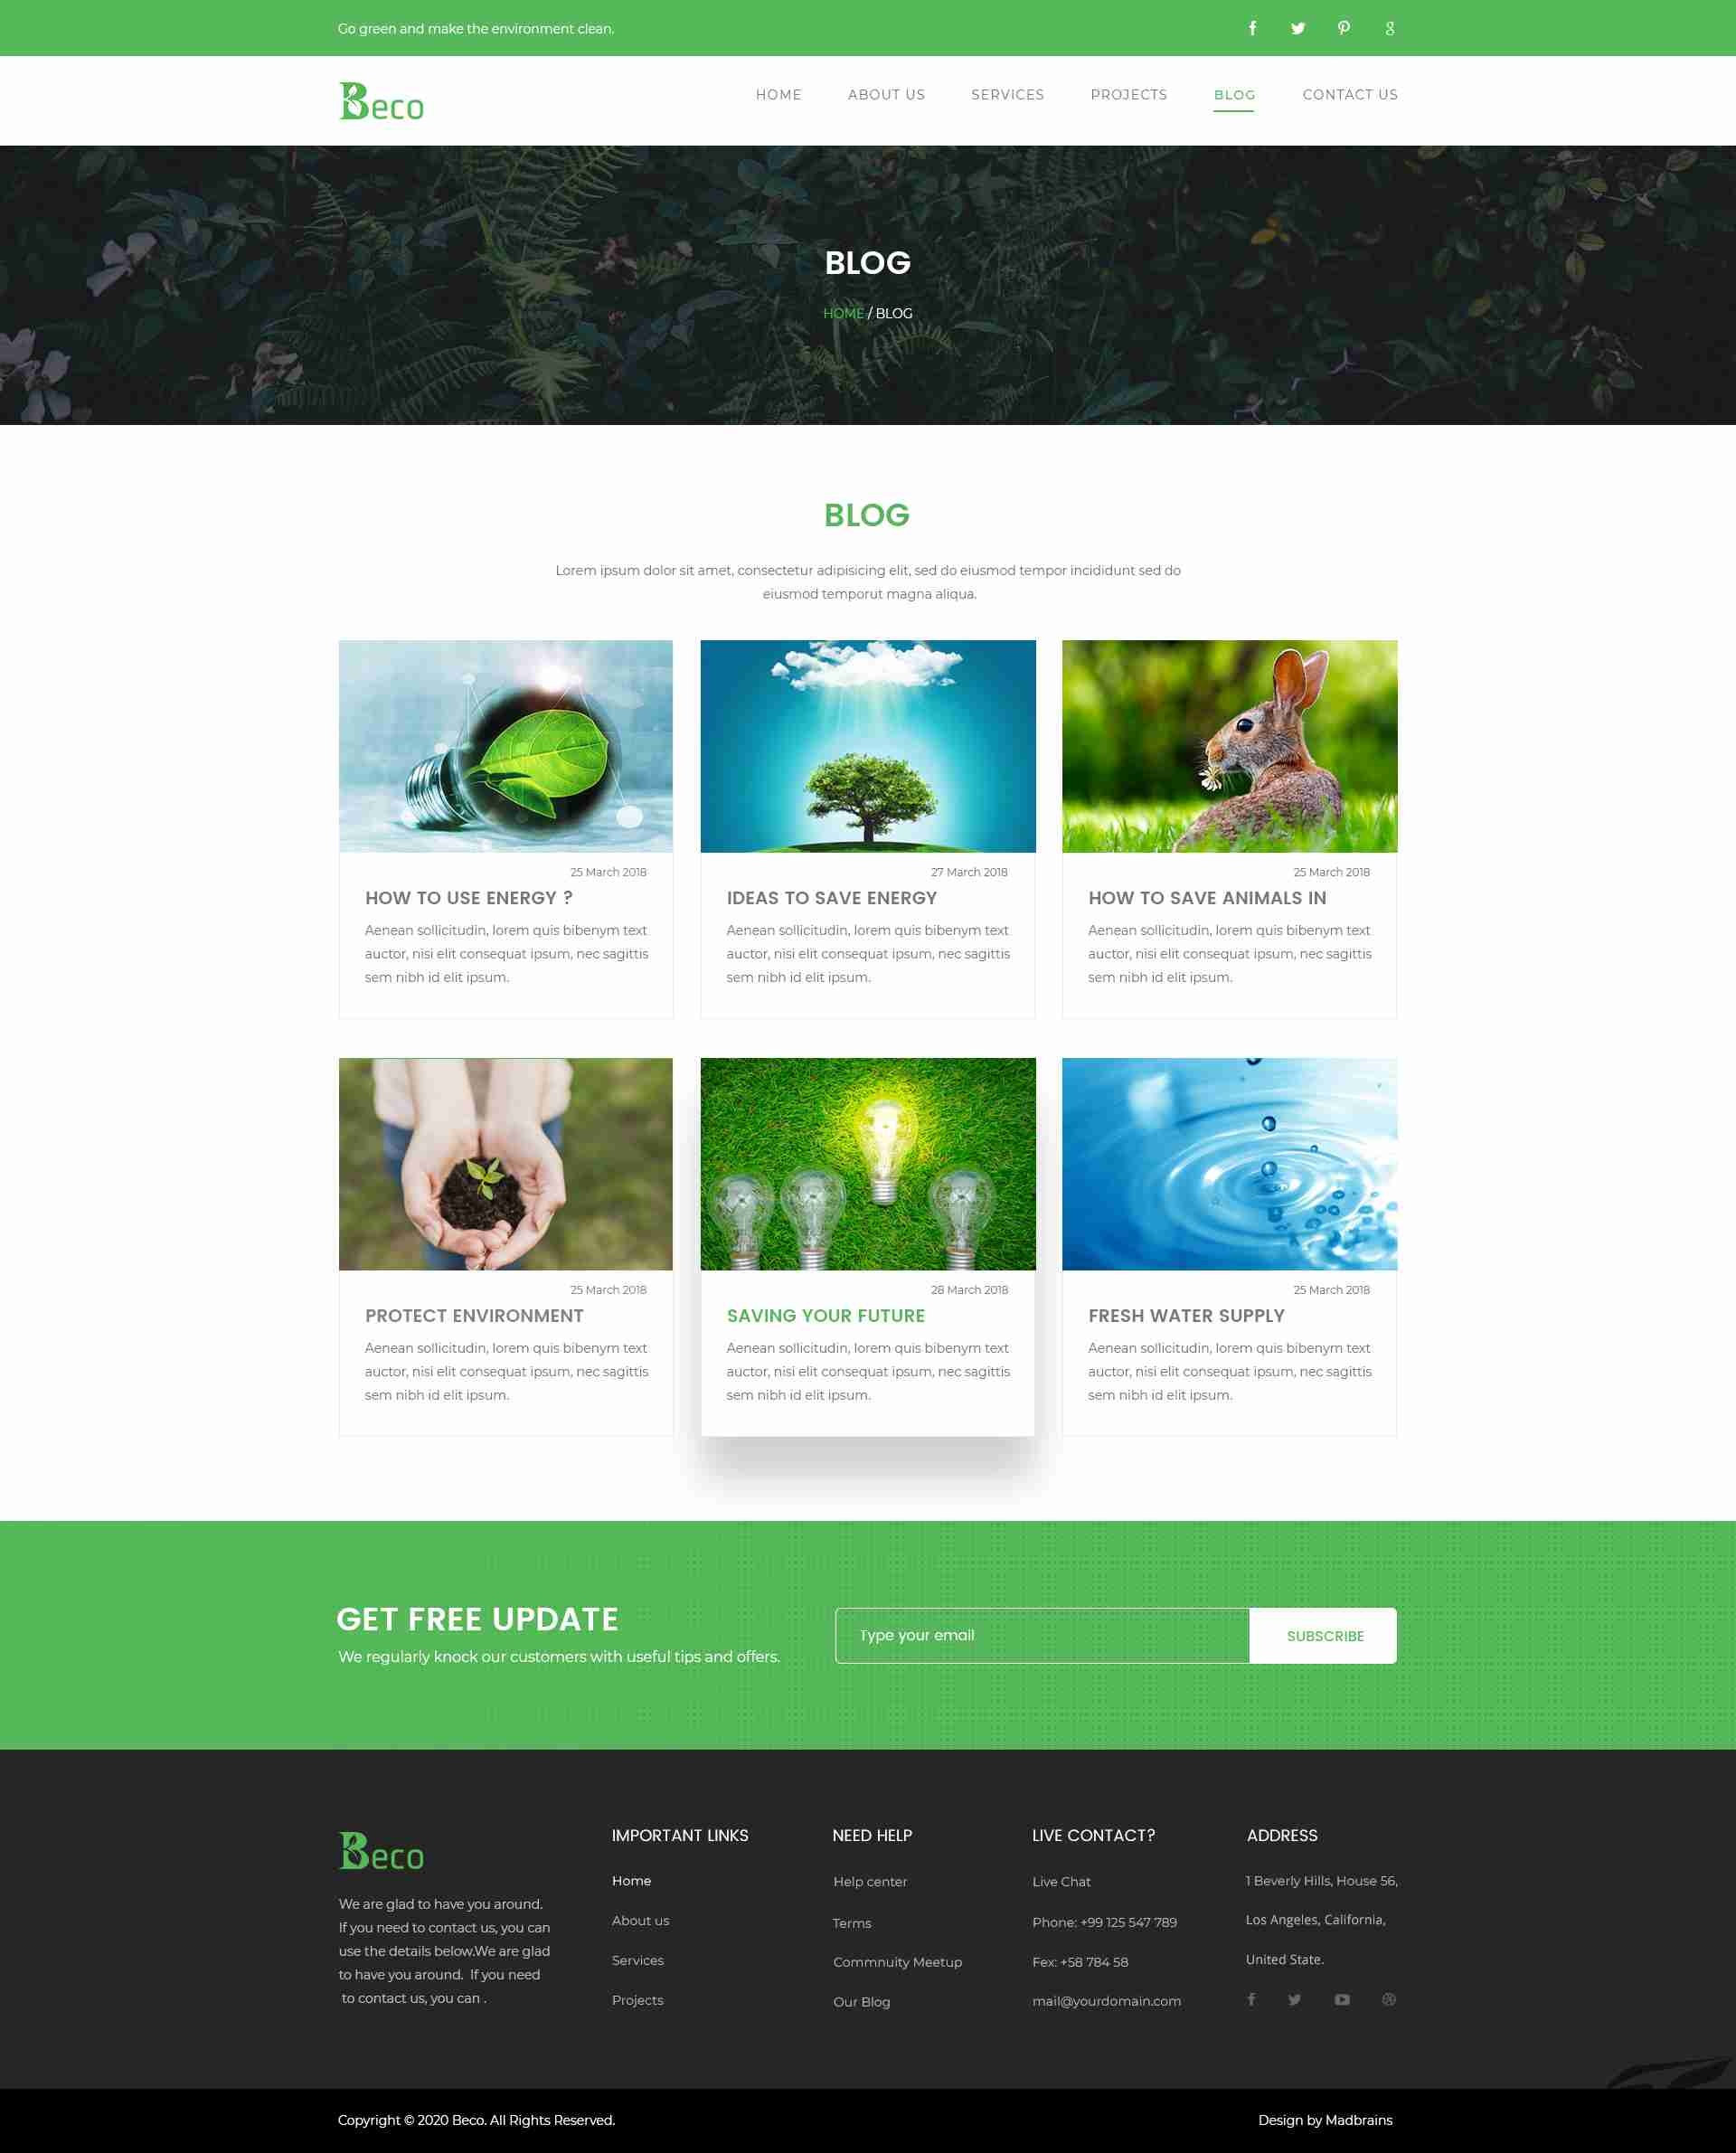 https://images.besthemes.com/images/h1_beco-template-renewable-energy-amp-ecology-company-template6-_-251965927/Screenshot/05-Blog.jpg